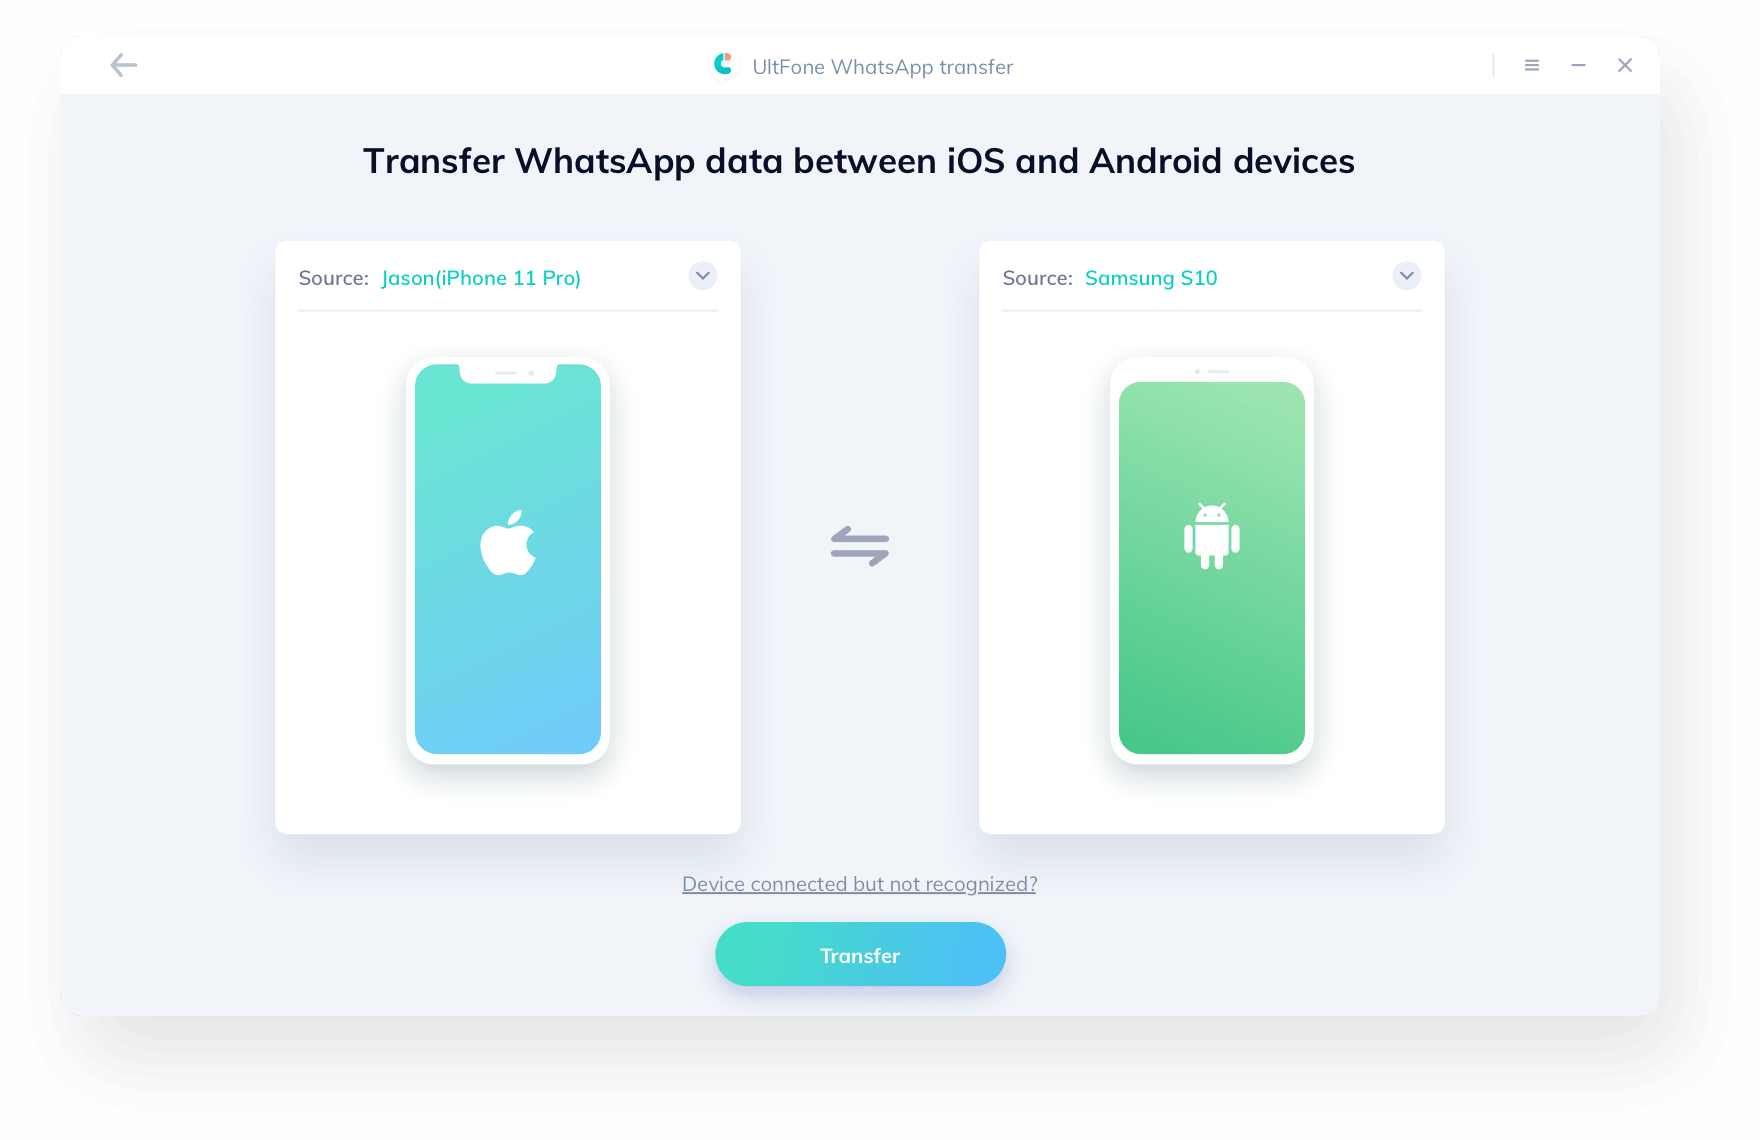 connect device to computer for whatsapp transfer